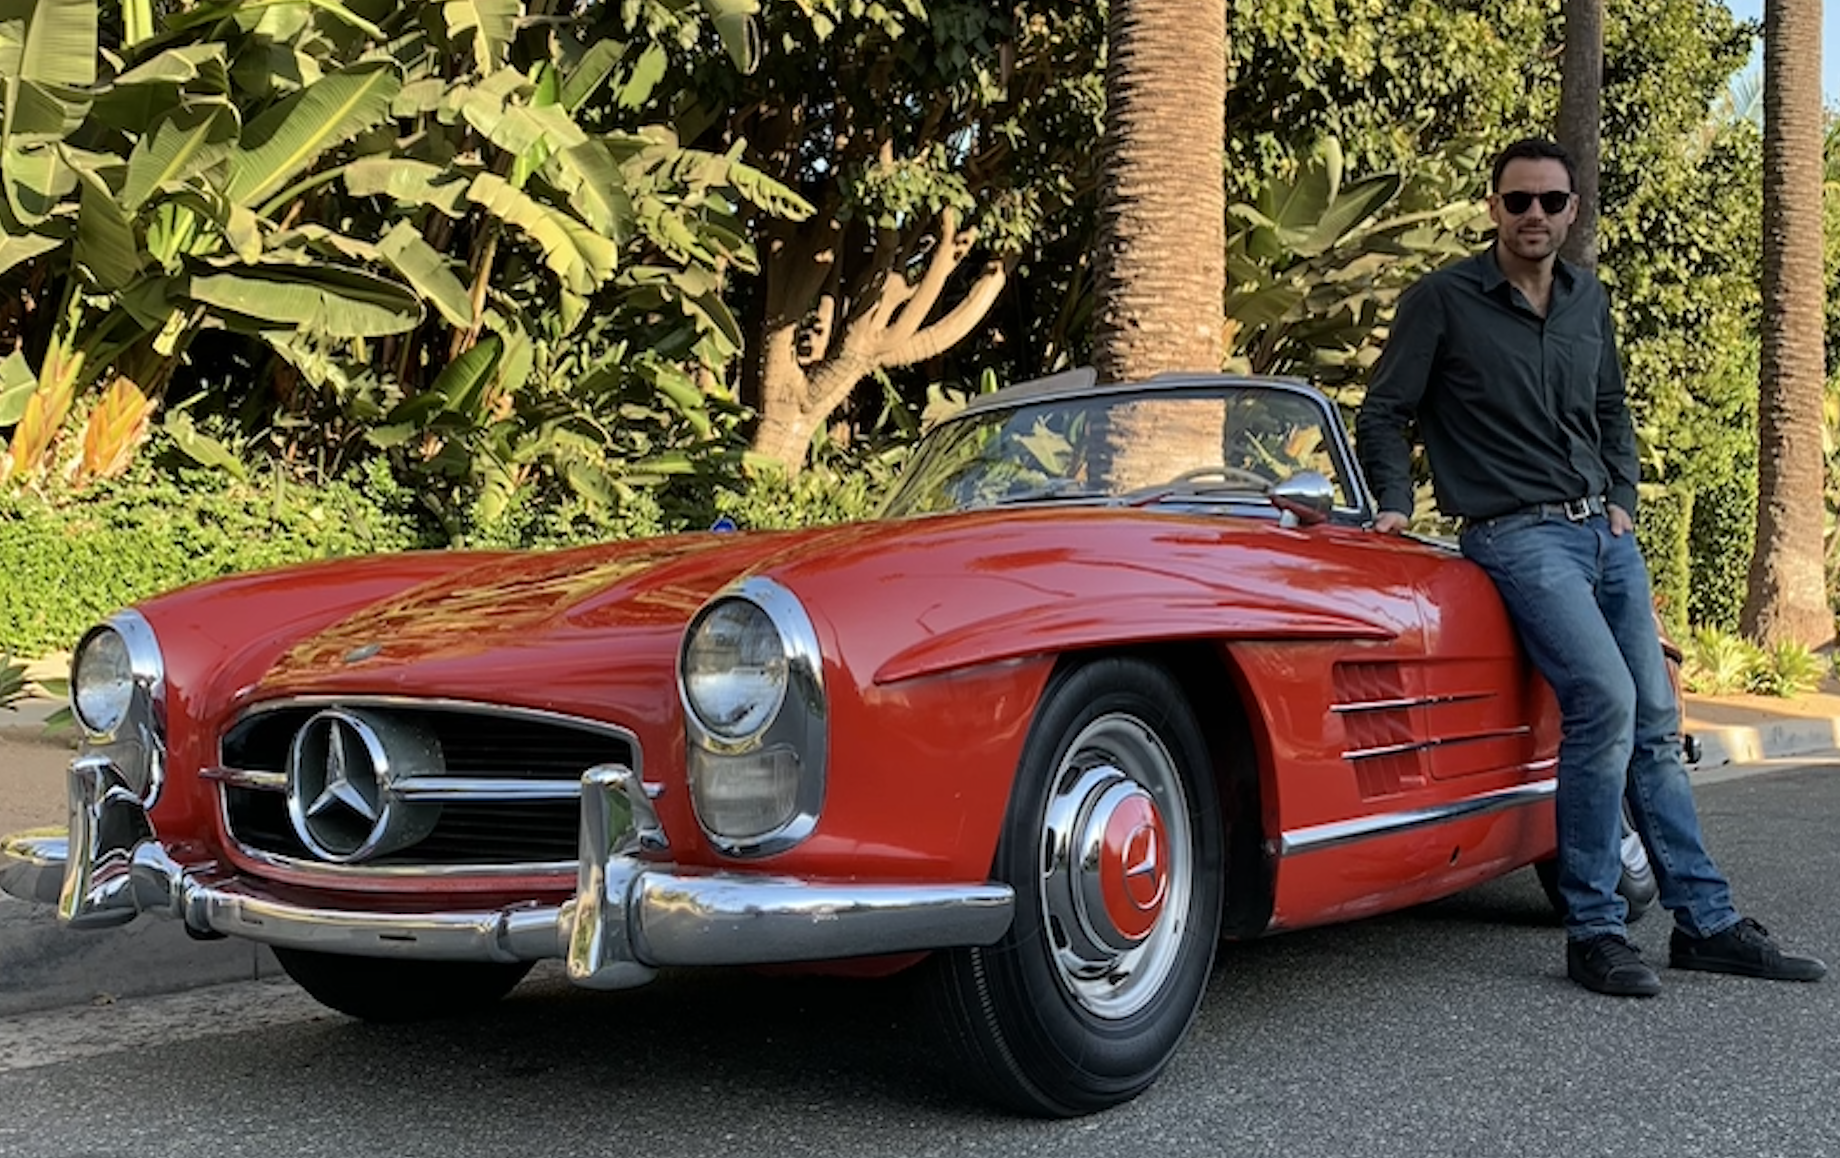 300SL Roadster for sale